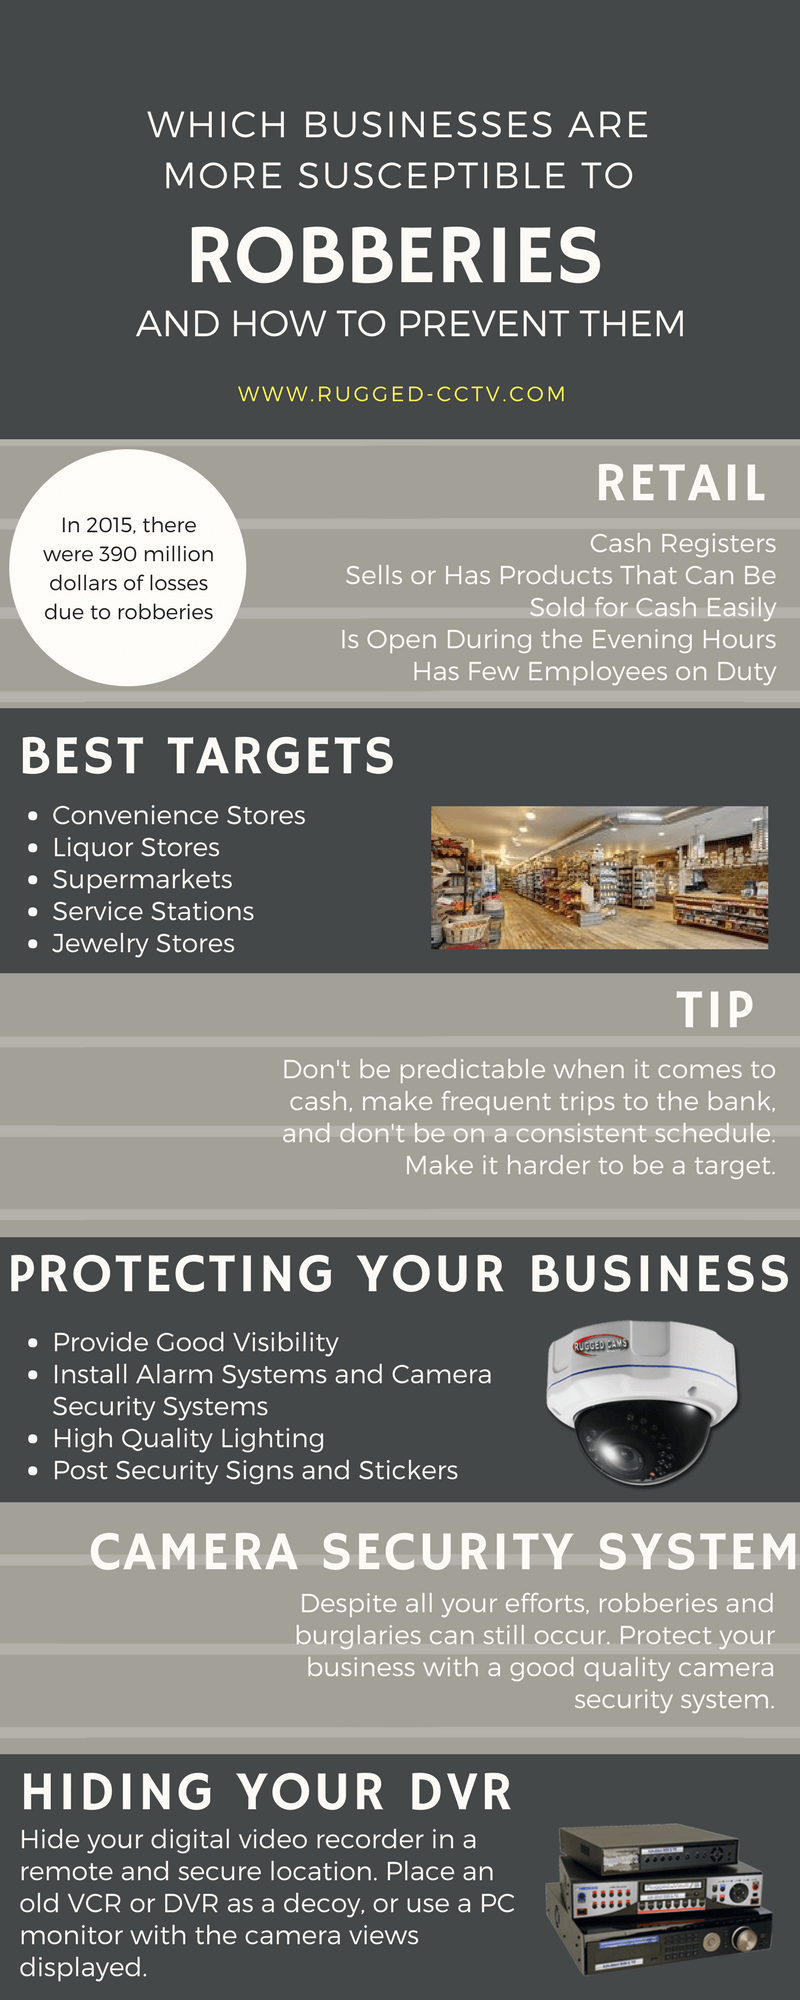 Business and Robberies - Statistics About Your Business & Robberies